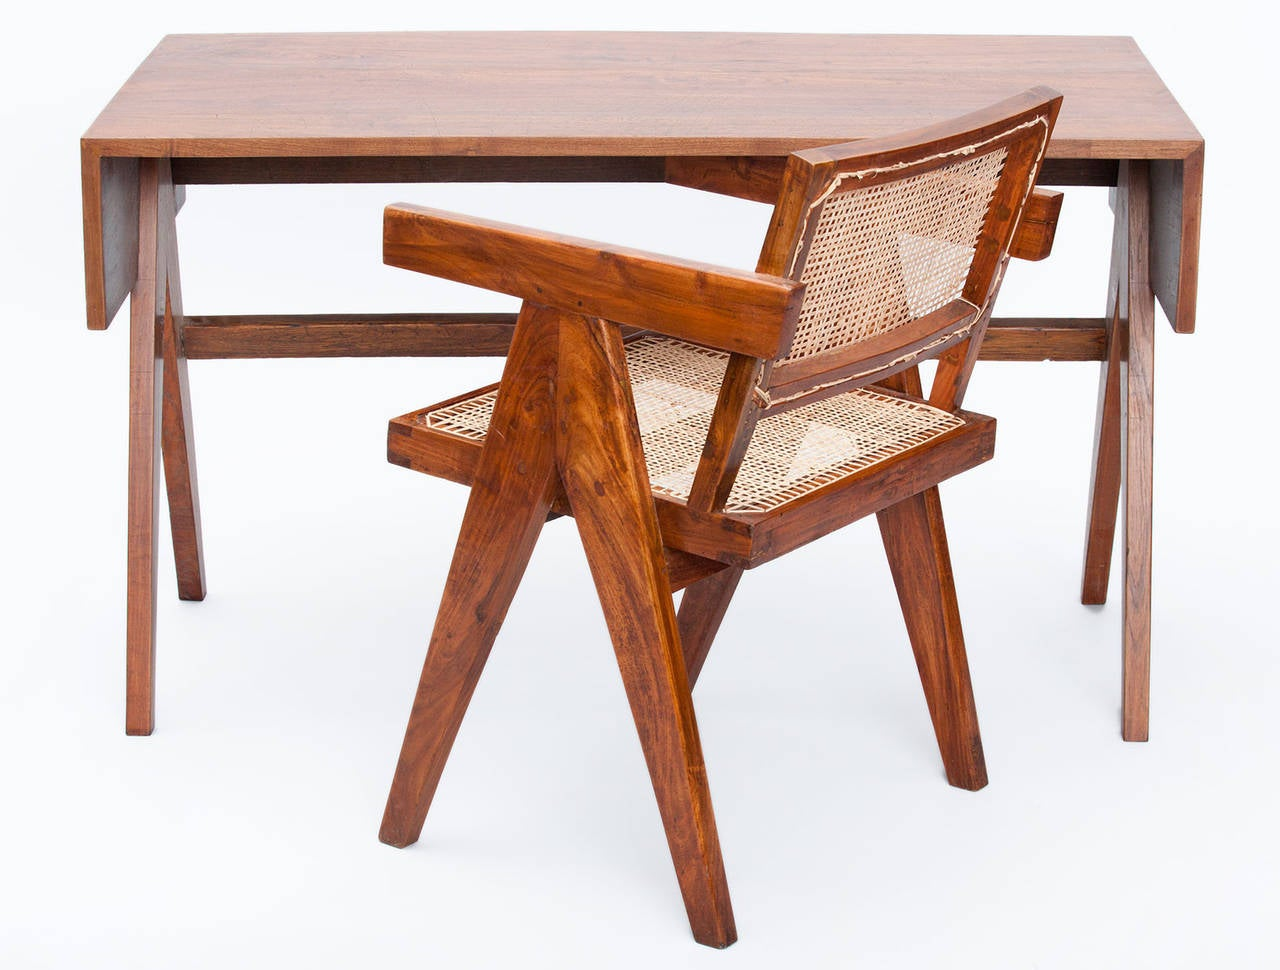 Modern Pierre Jeanneret Desk For Sale